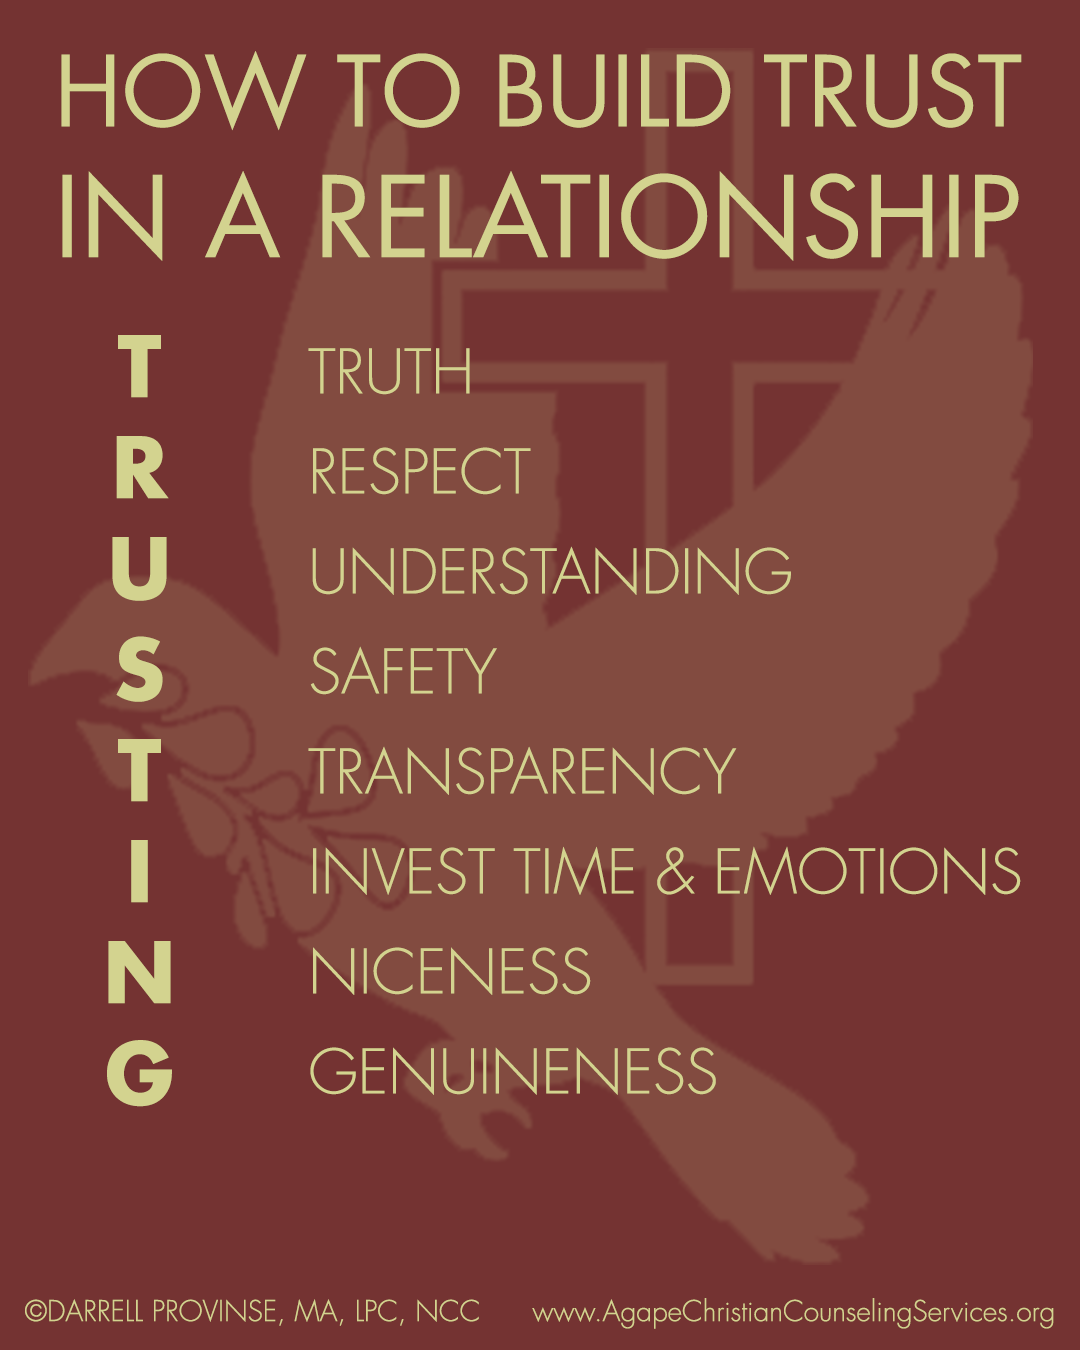 Click For How To Use The Trusting Acronym To Build Trust